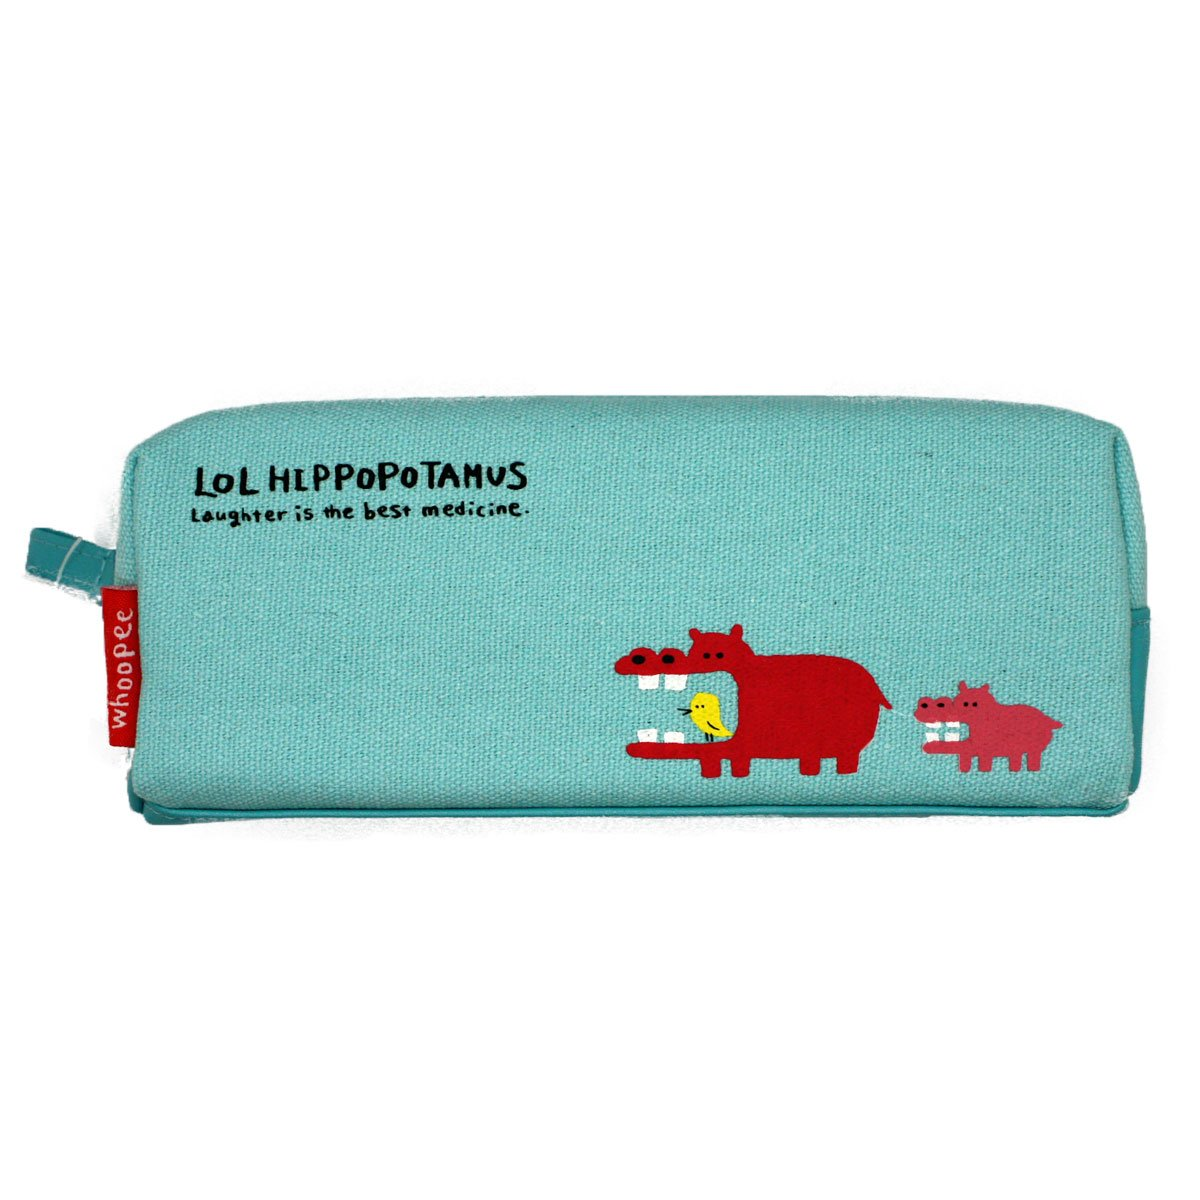 "''Kawaii Pencil case/Pouch'' Popular for Japanese School Girls That Produced by Famous Company in Japan.Character's Name is''LOL HIPOPOTAMUS""."